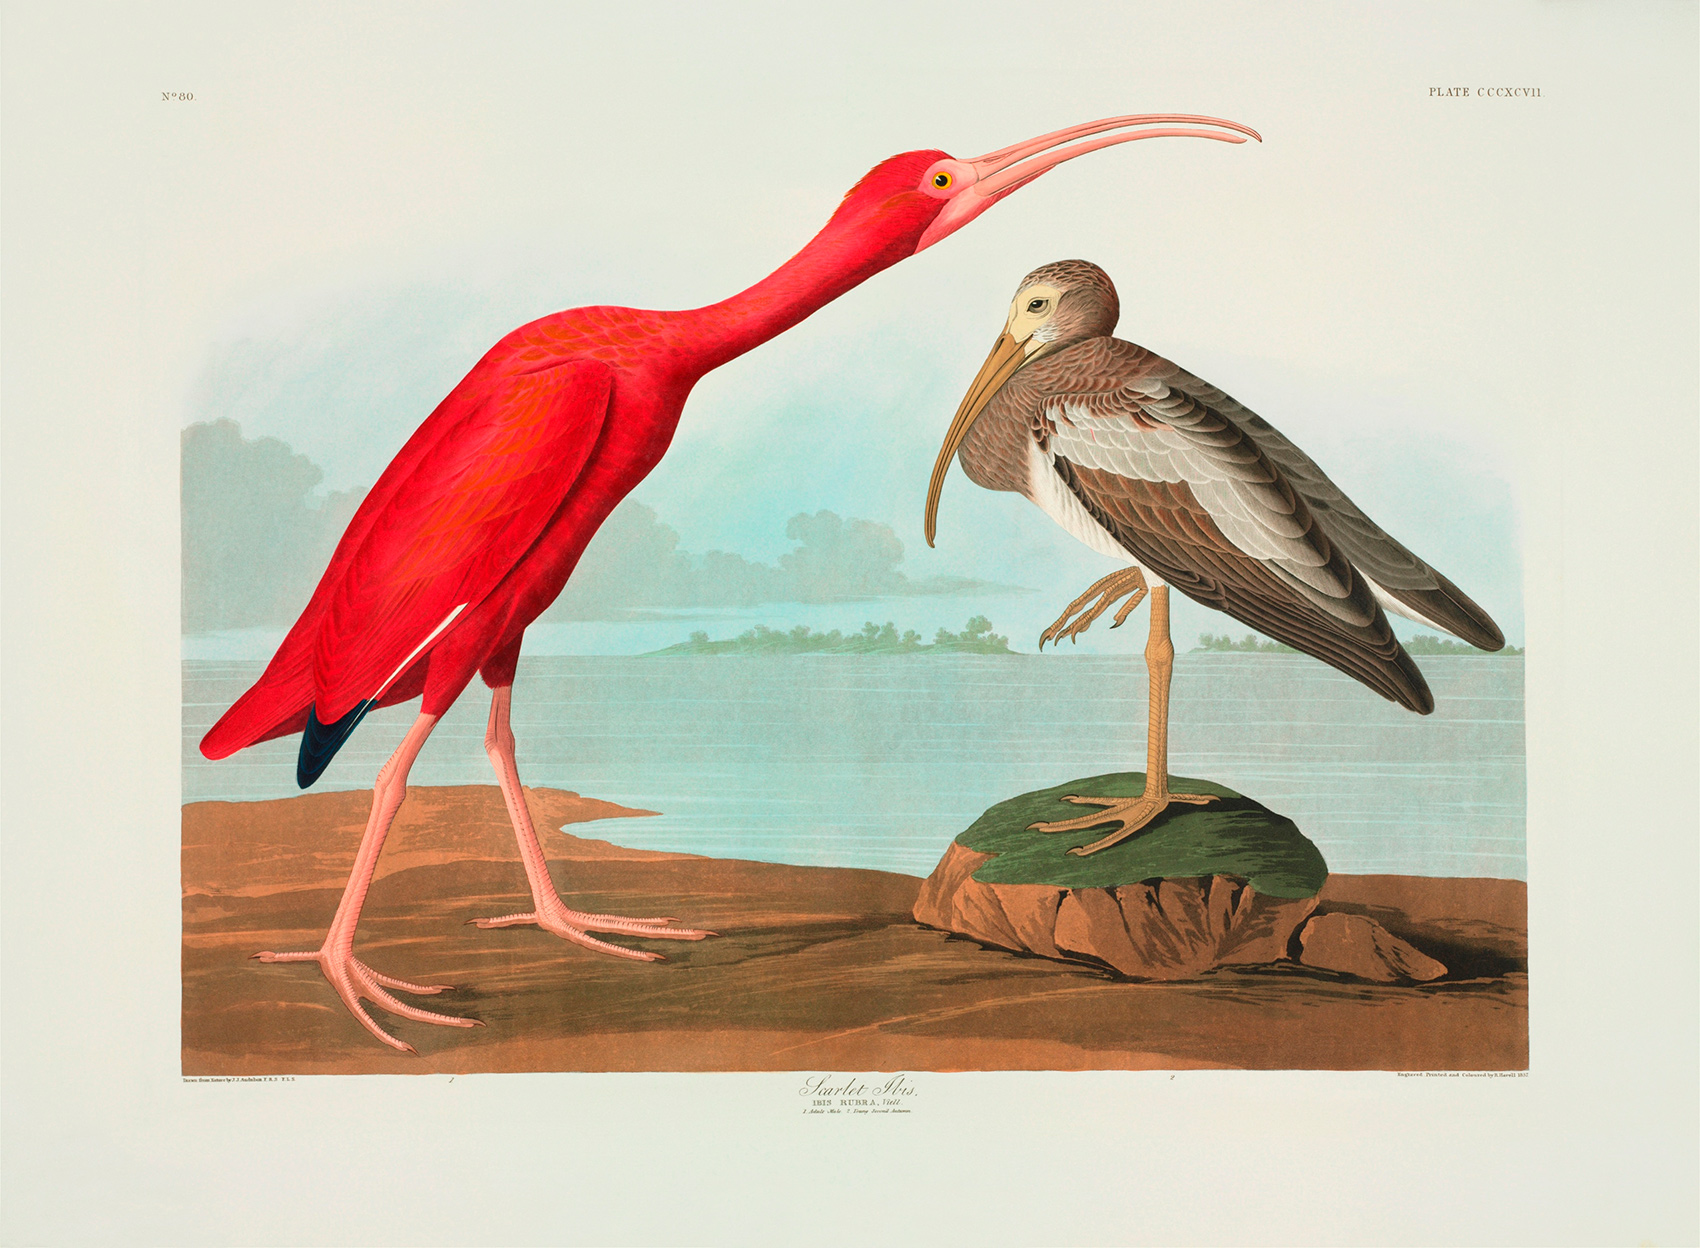 ジョン・オーデュボン 『アメリカの鳥』 ©The Trustees of the Natural History Museum, London